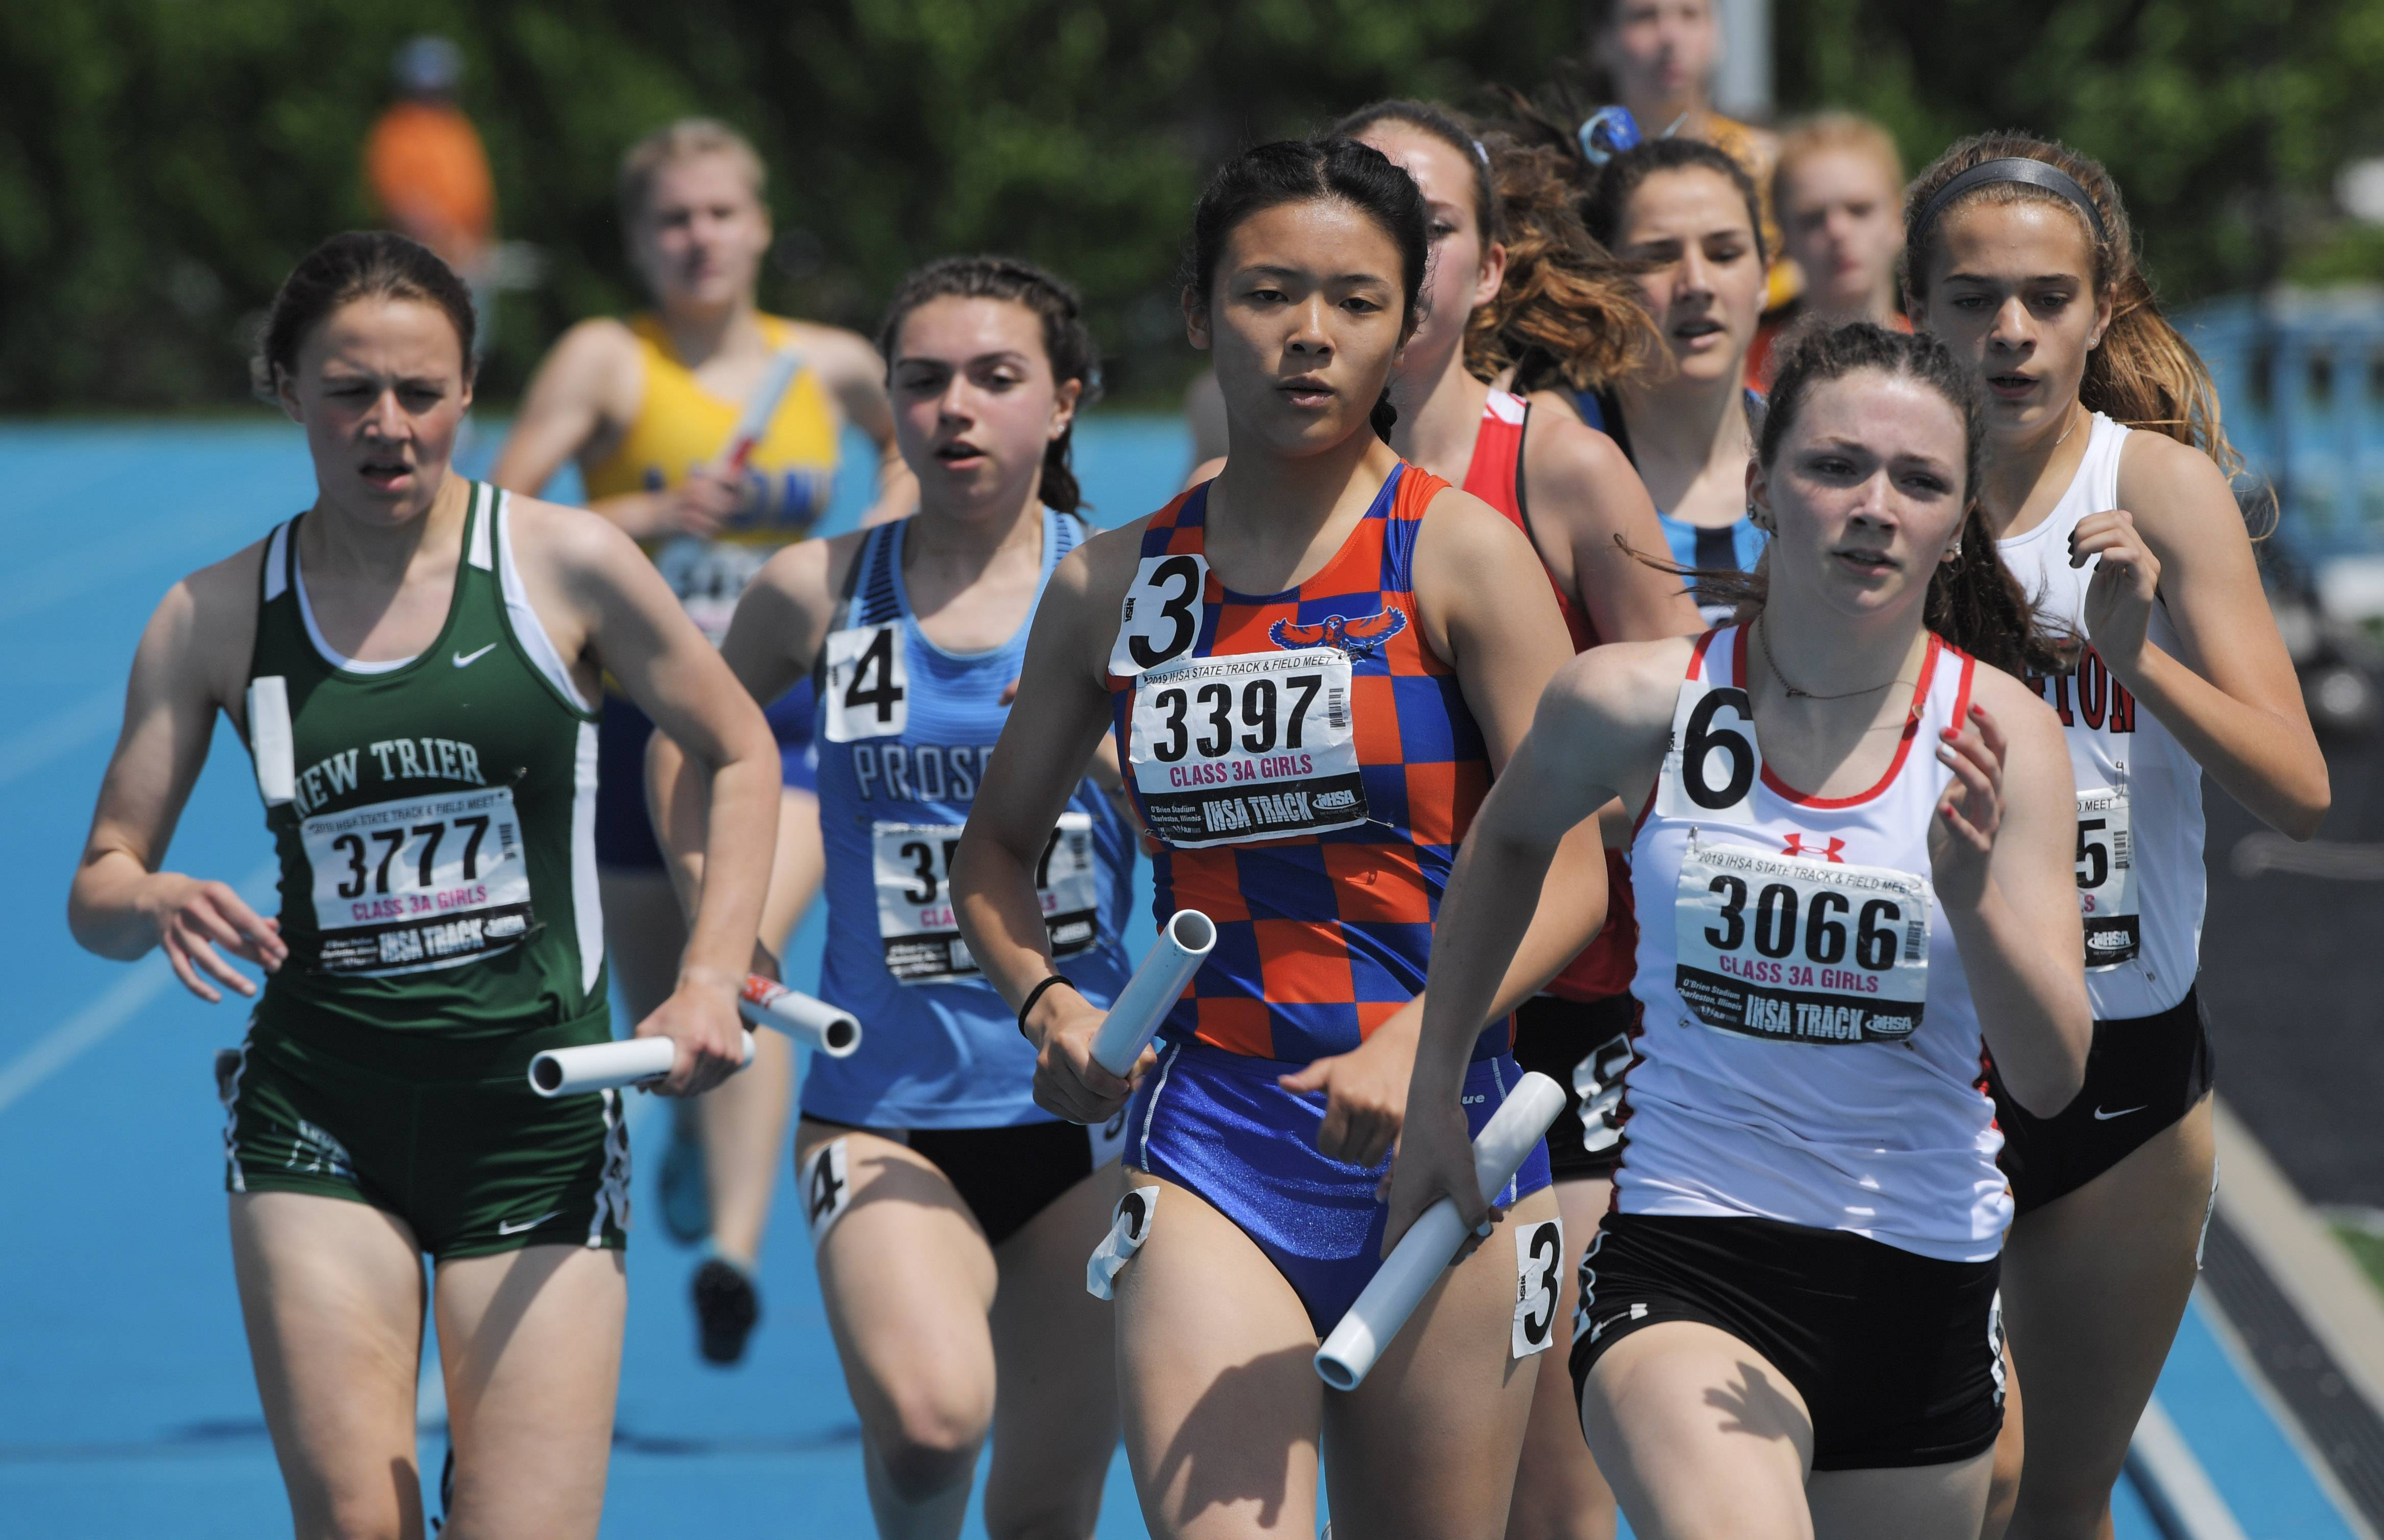 Batavia's Katrina Schlenker (3066) leads the field midway through the Class 3A 3,200-meter relay as Hoffman Estates' Nikki Rong (3397) runs just behind her during the girls state track finals in Charleston Saturday.